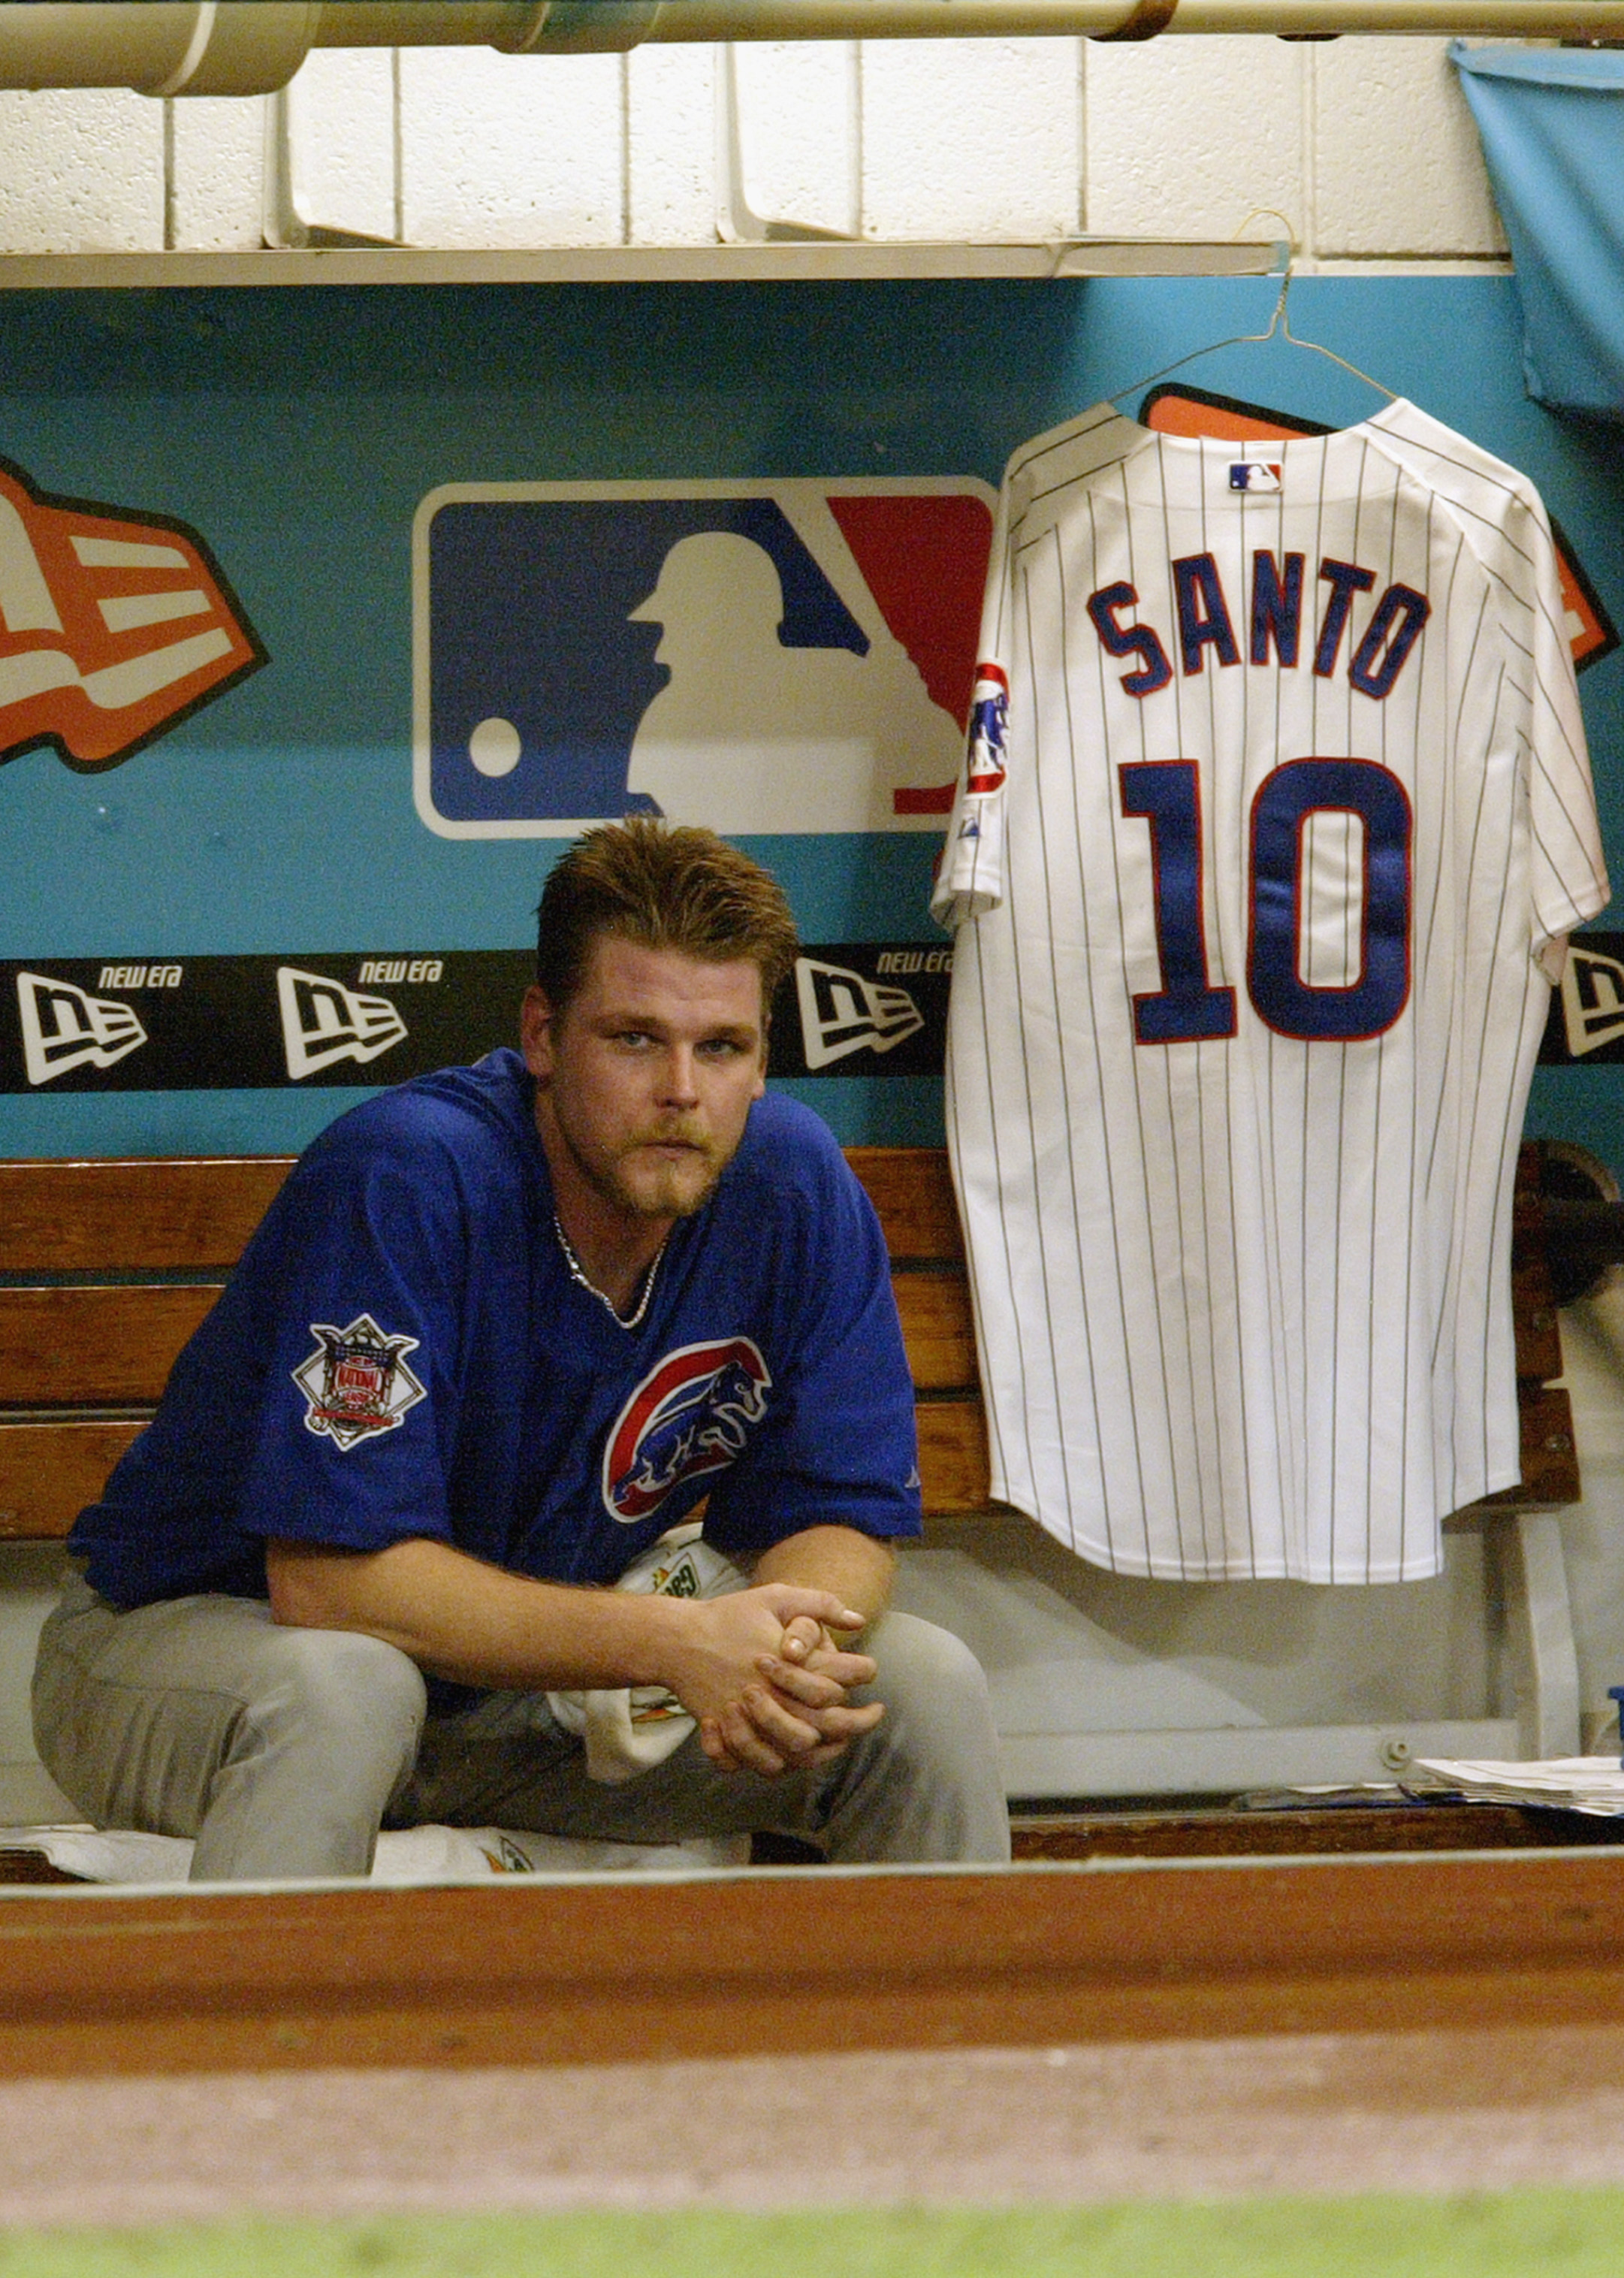 MIAMI - OCTOBER 10:  Kerry Wood #34 of the Chicago Cubs watches game three of the National League Championship Series against the Florida Marlins from the dugout as a uniform of Cub great Ron Santo #10 hangs beside him on October 10, 2003 at Pro Player St